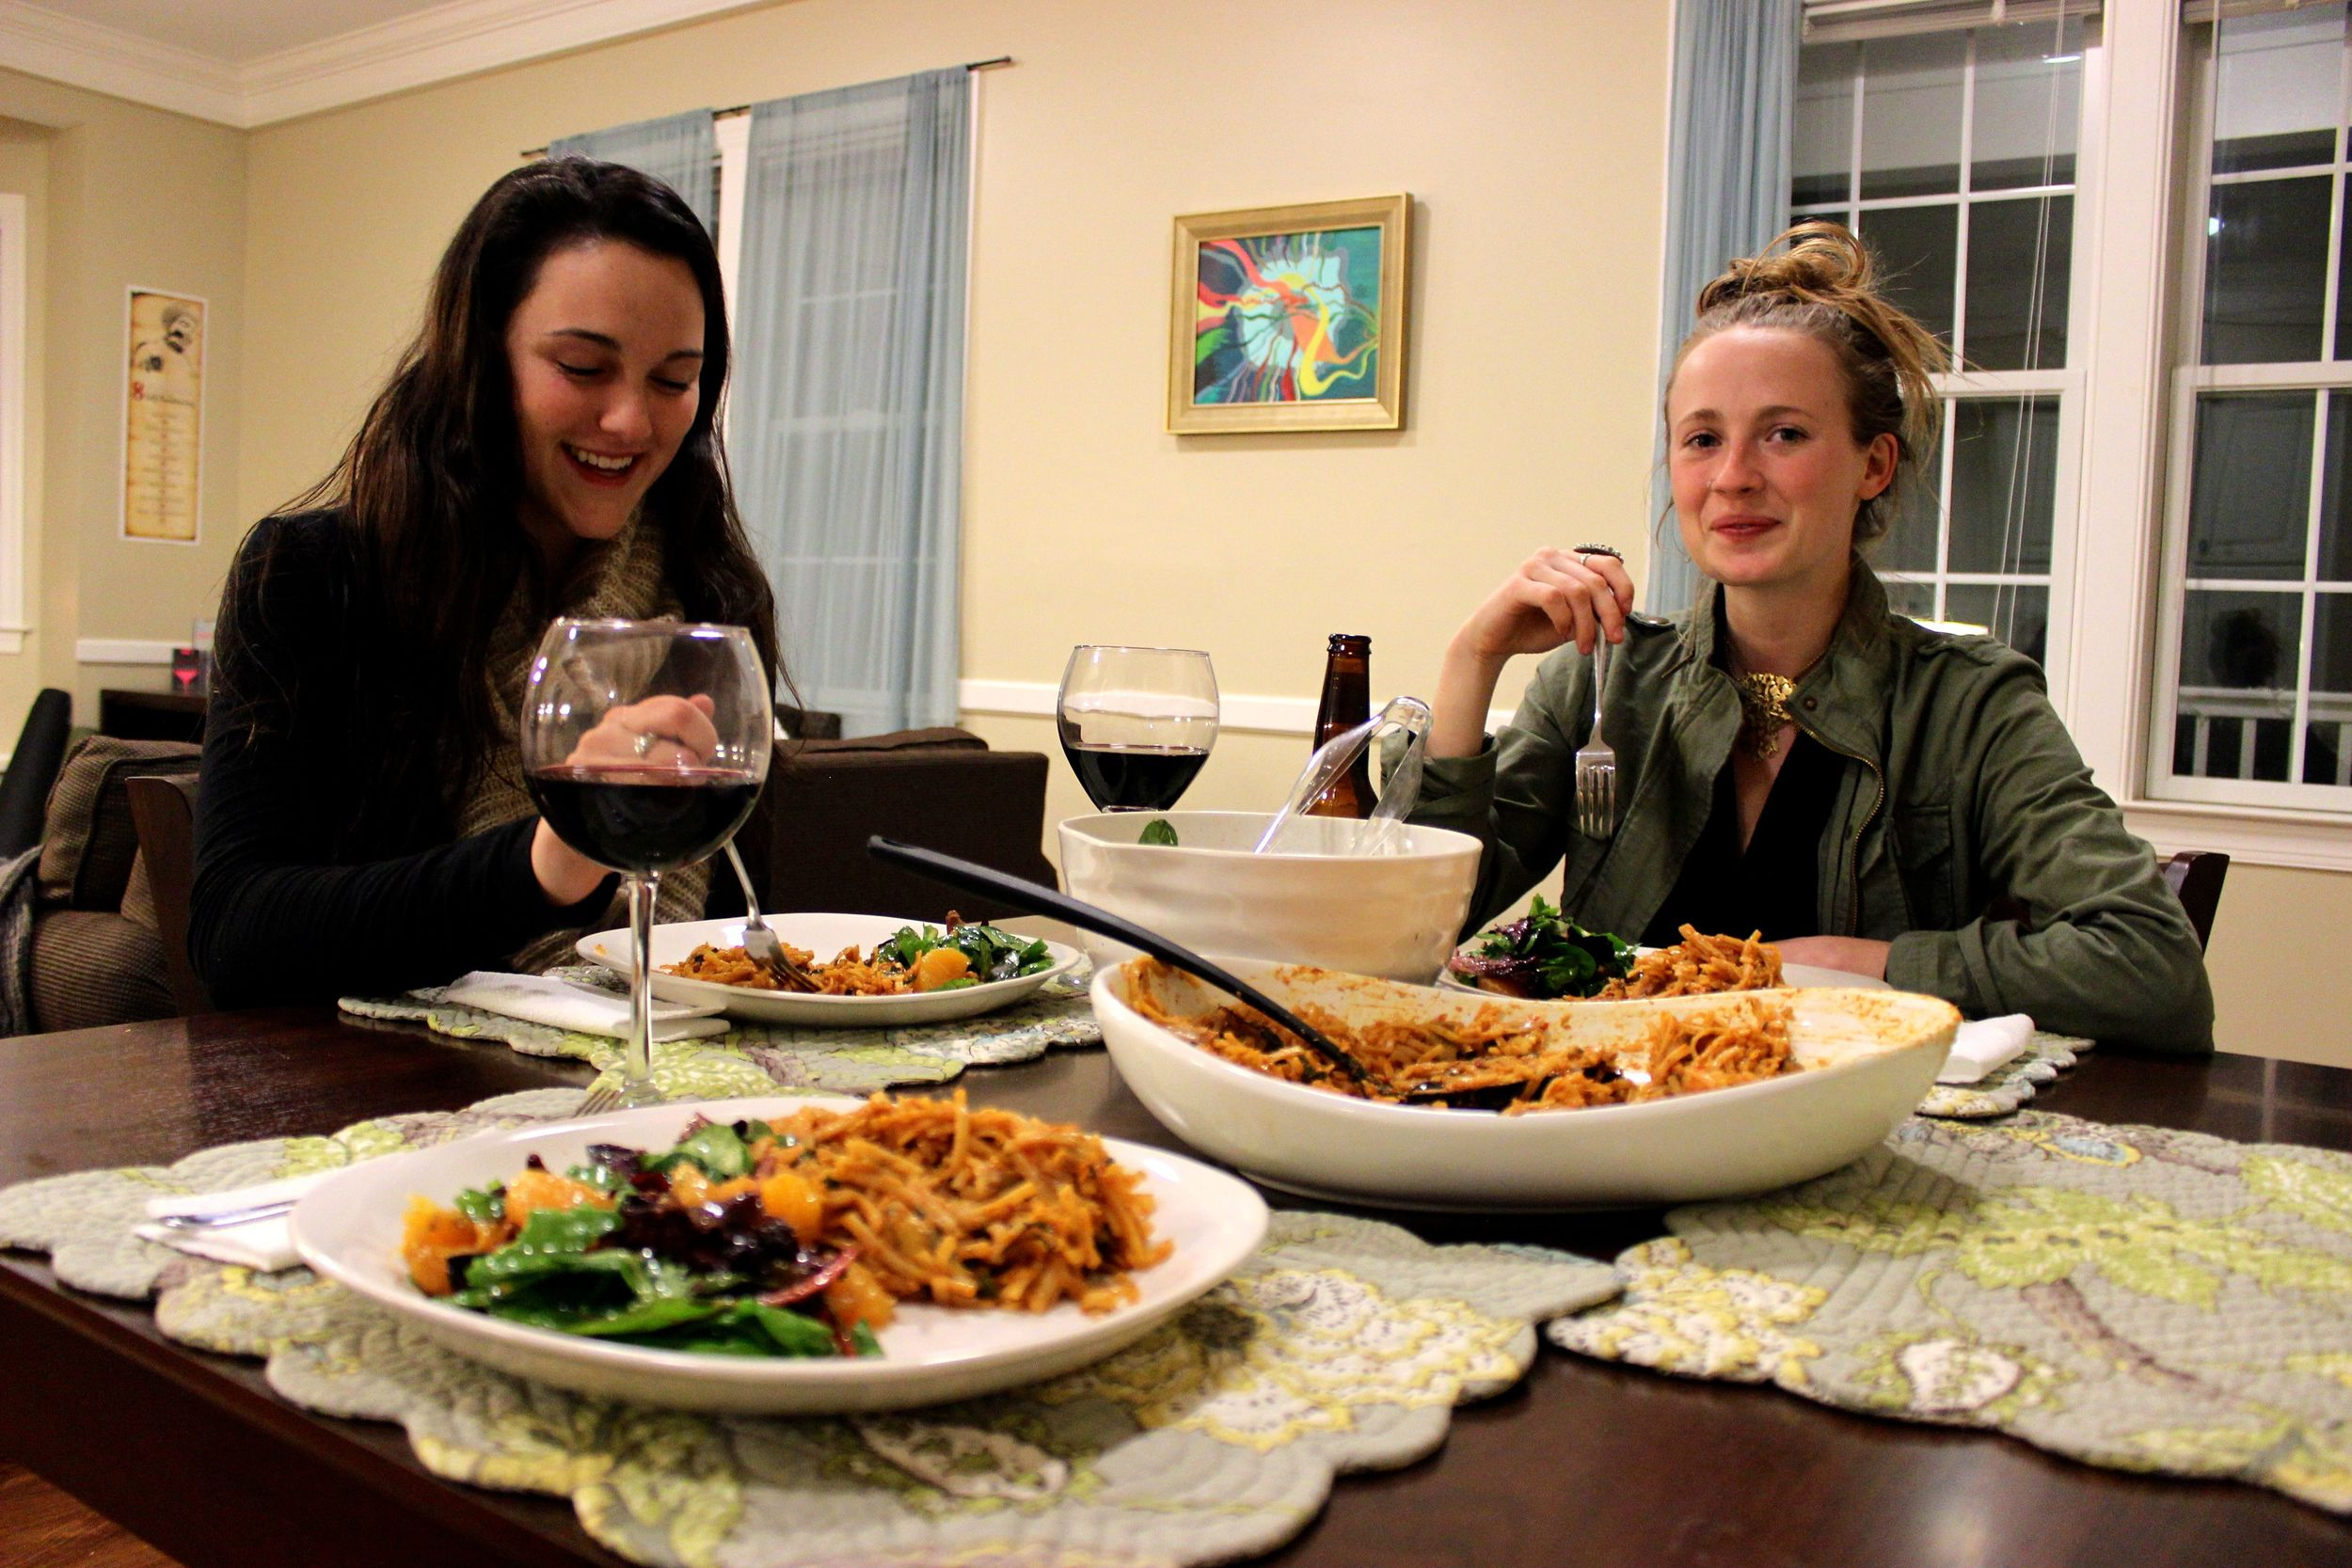 These are my friends Olivia (left) and Alex (right). I love cooking for my friends and having them over for dinner and wine. Best Friday night fun :) I made them spicy thai coconut noodles and a ginger citrus salad.